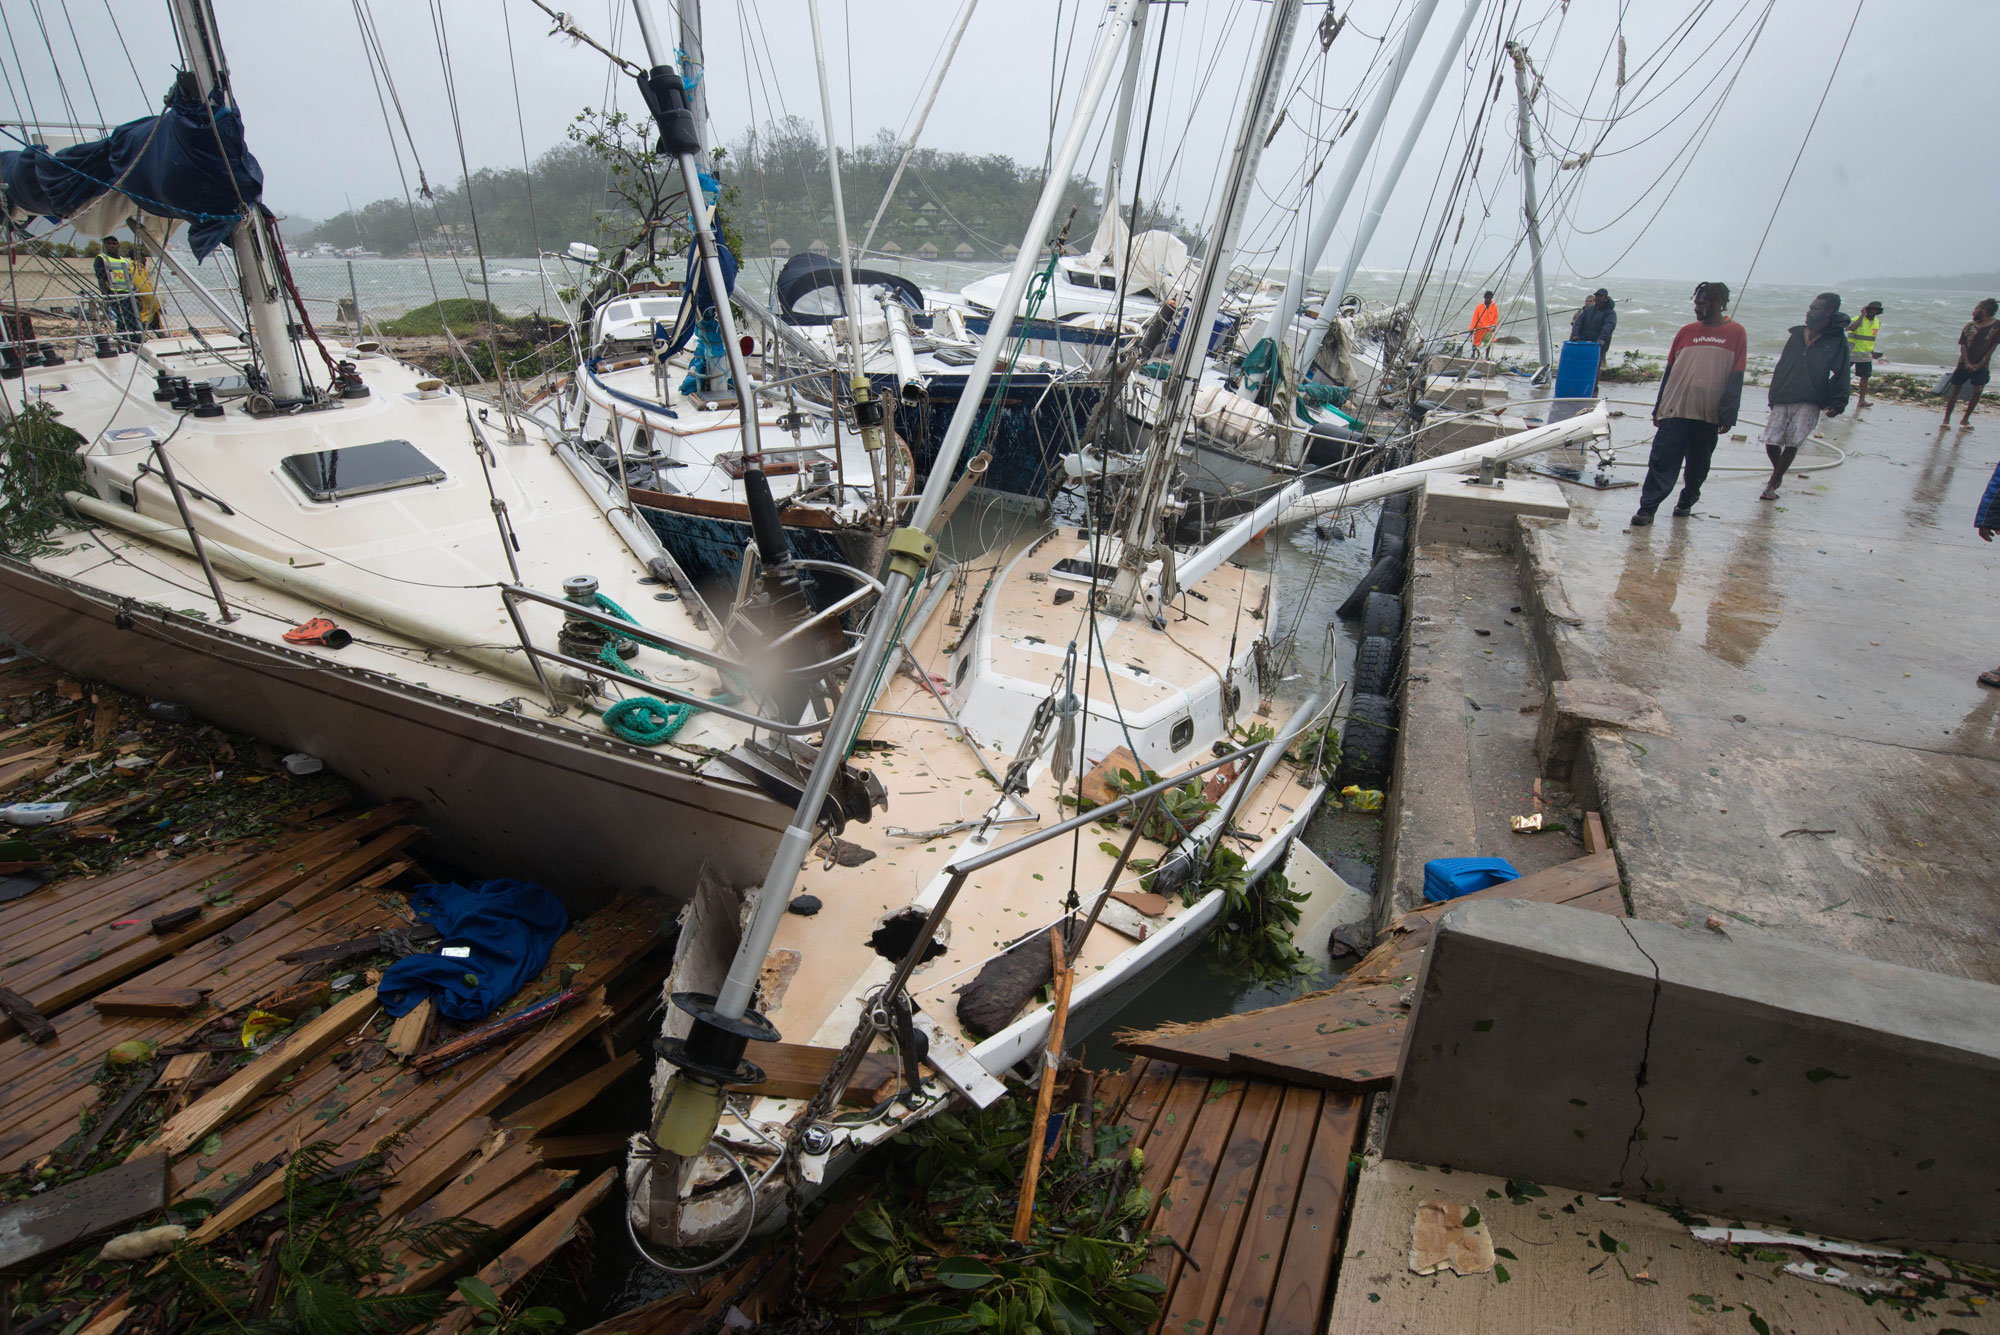 Storm damage in Vanuatu's capital, Port Vila, a day after Cyclone Pam struck the Pacific Island nation in March. UNICEF/UNI180951/Crumb